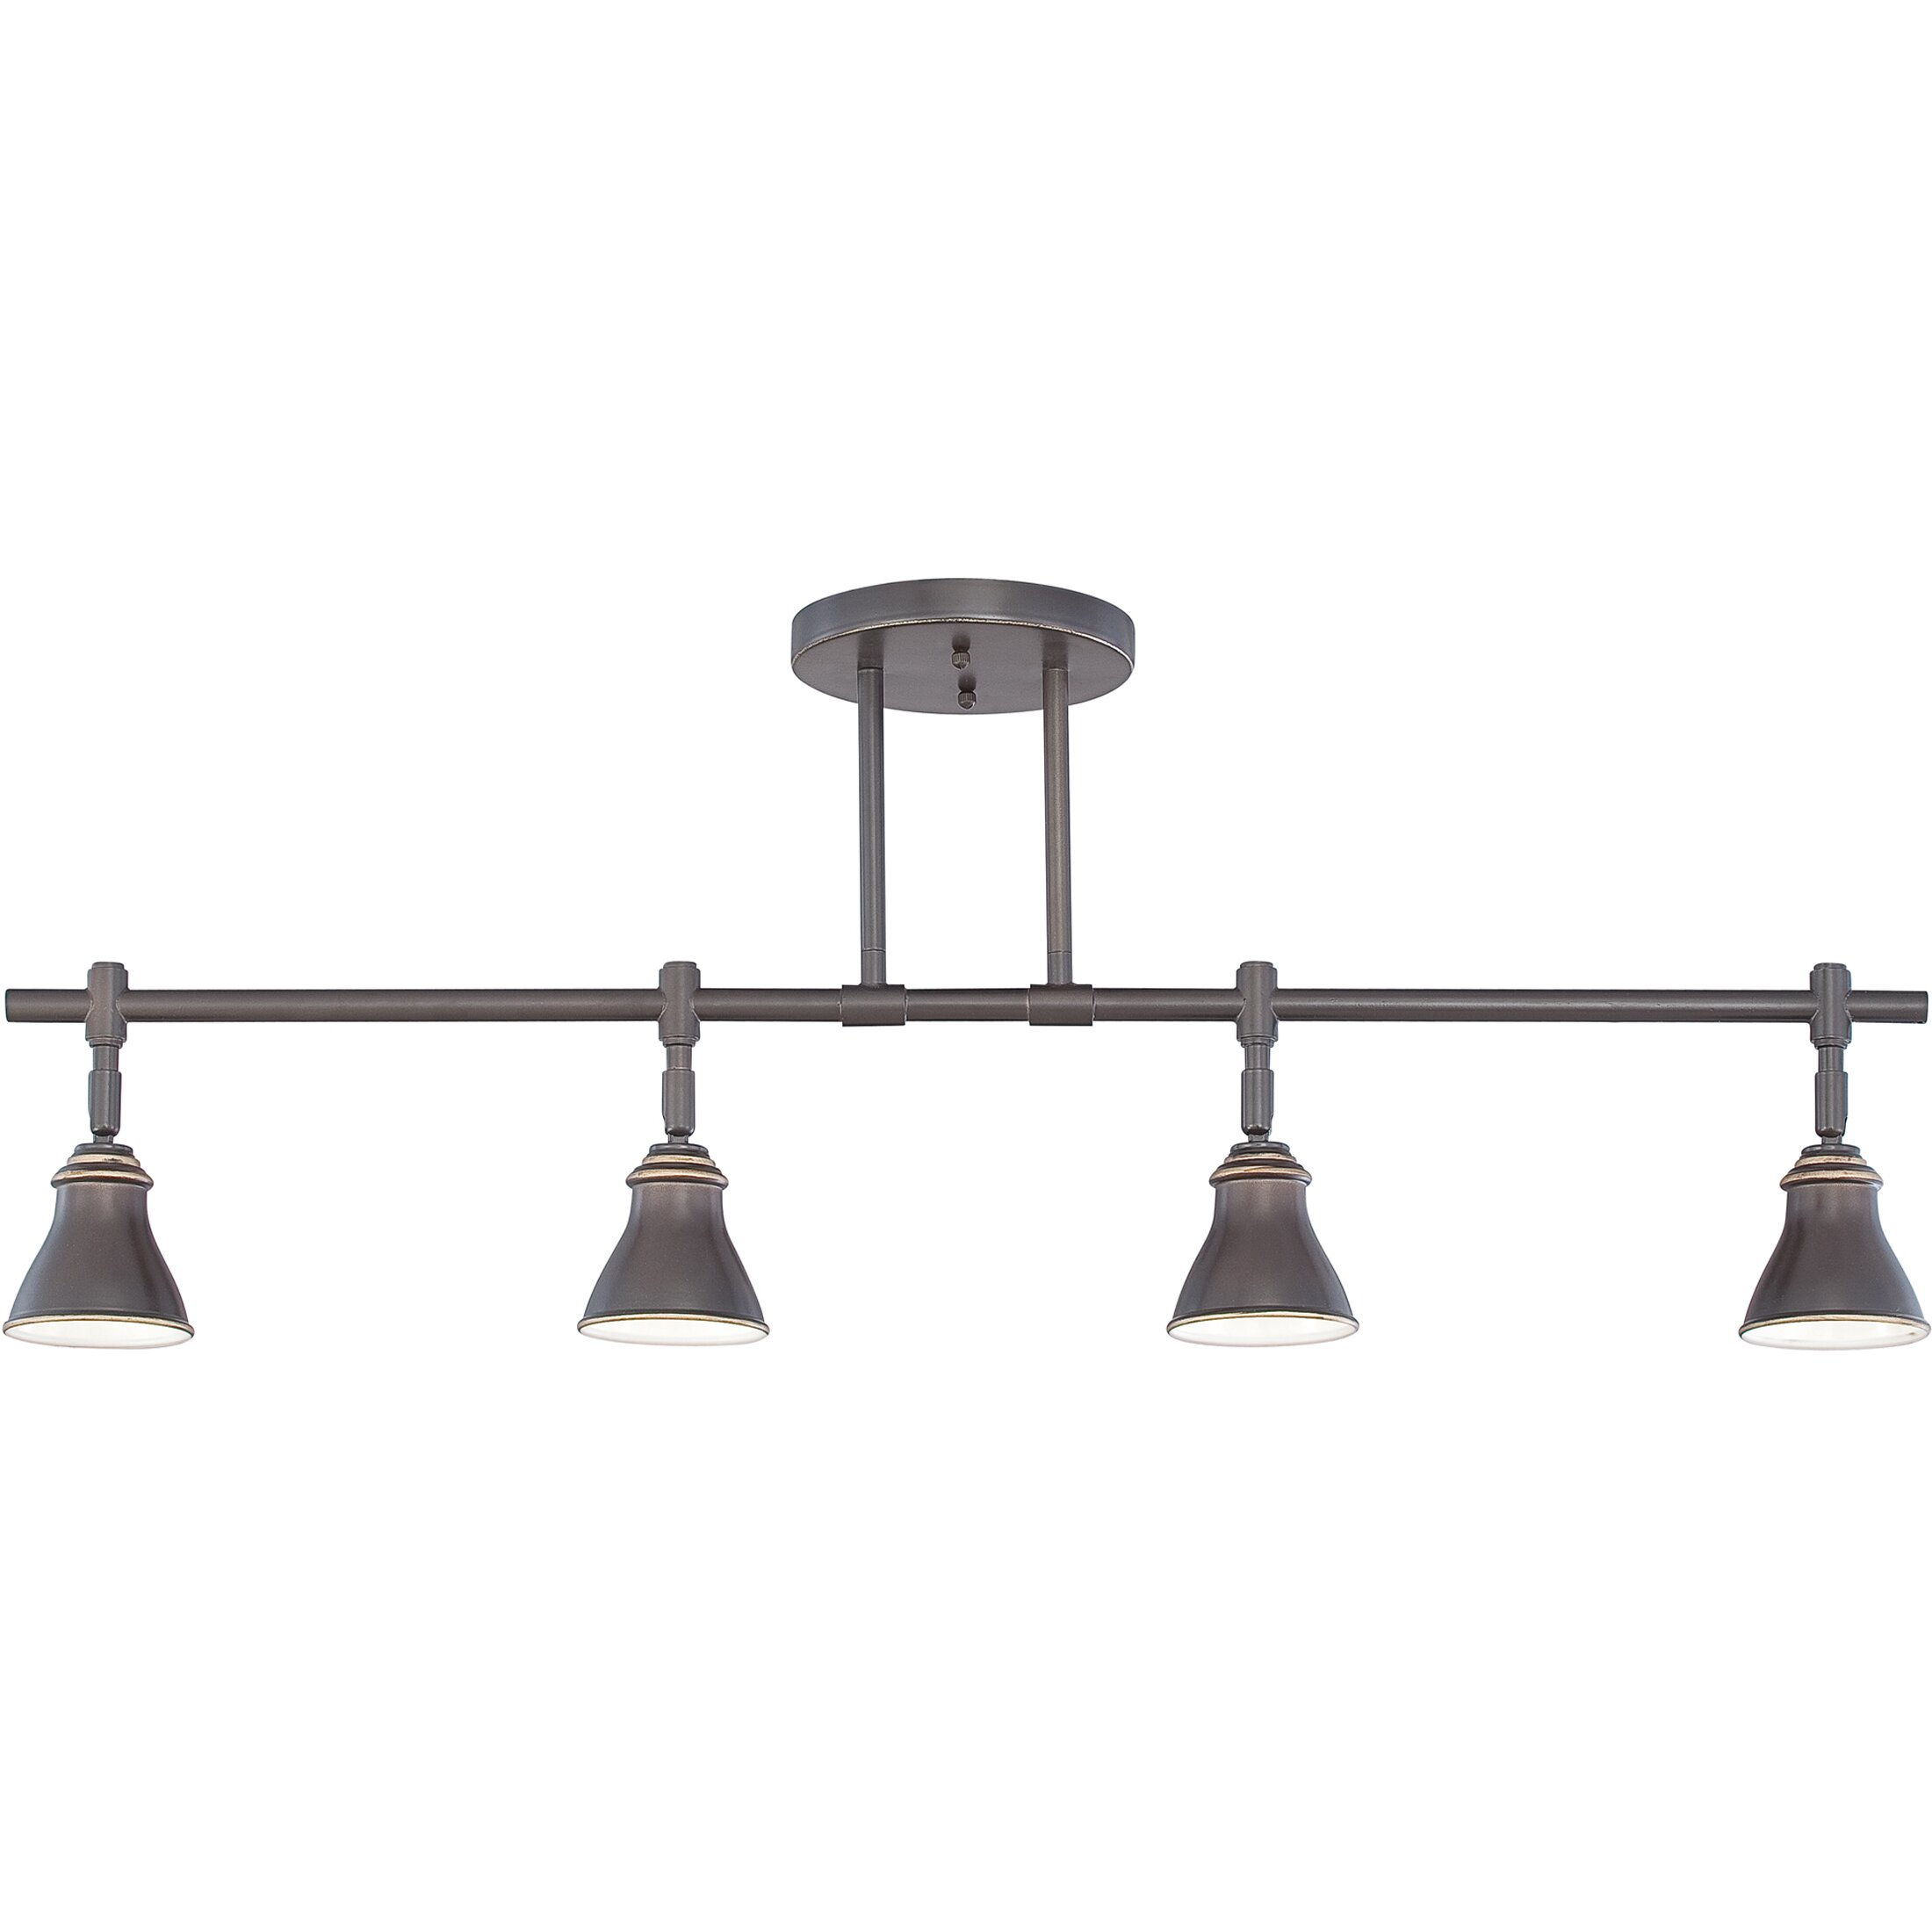 Kitchen Ceiling Track Lights: Quoizel Denning 4 Light Kitchen Island Pendant